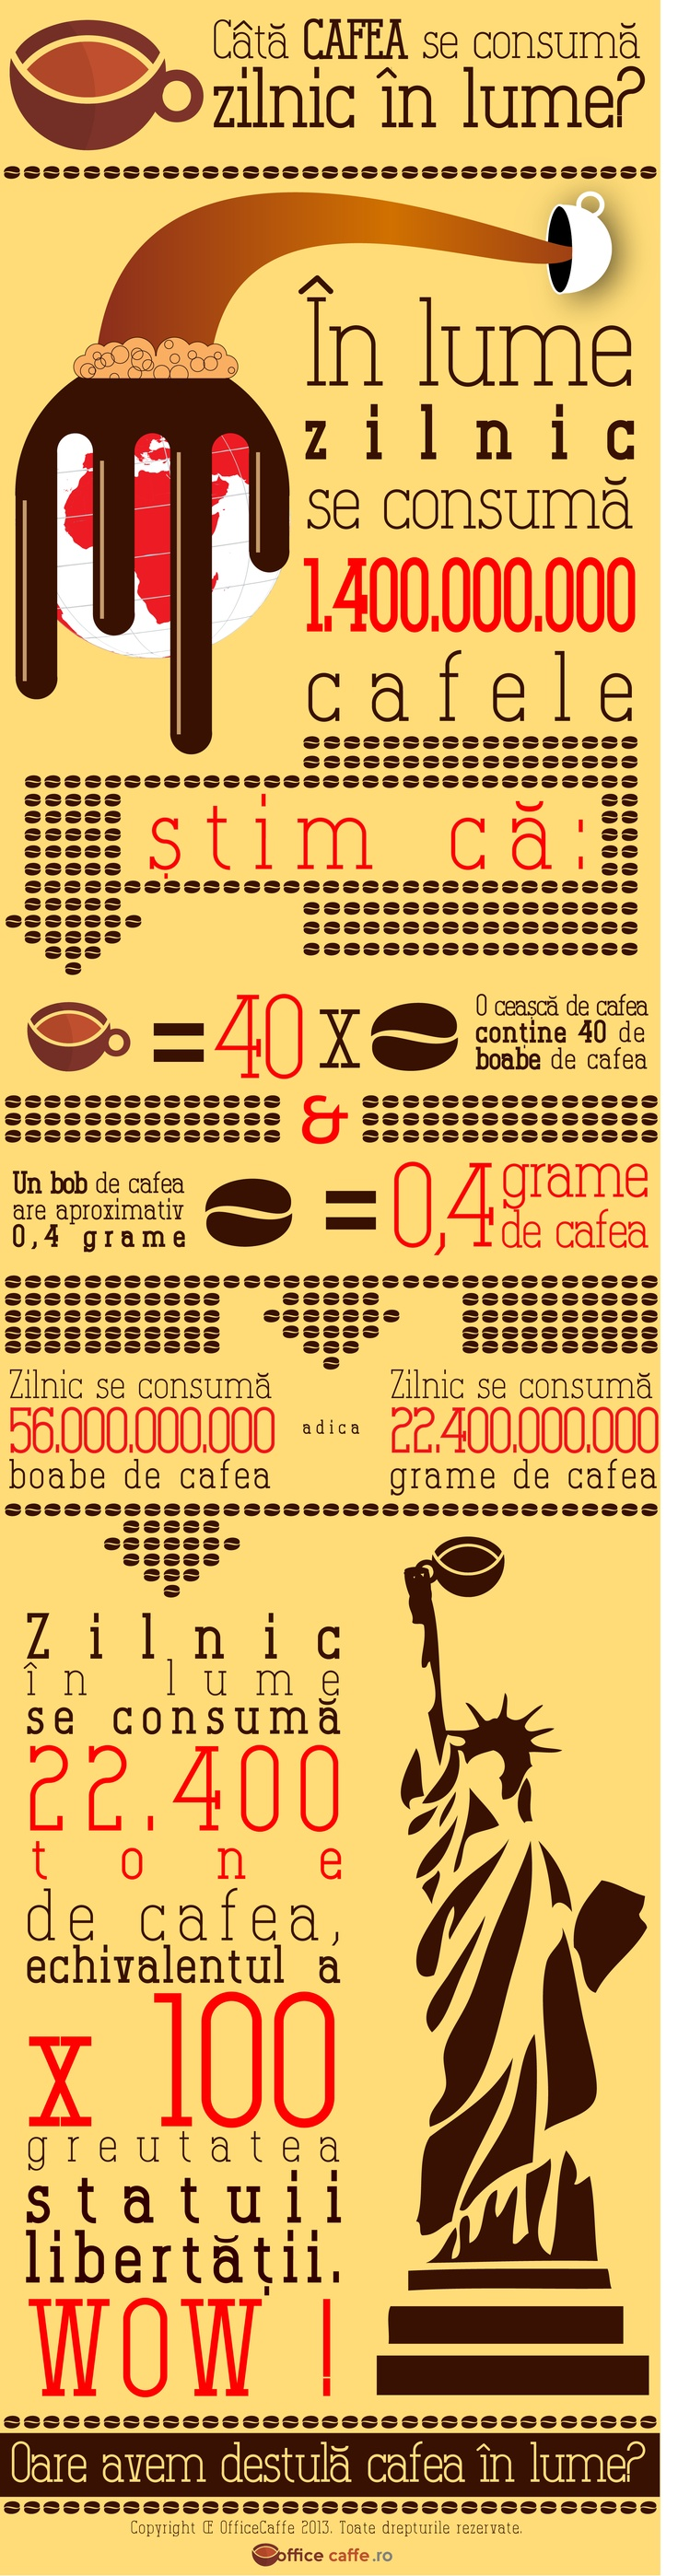 Worldwide coffee consumption infographic.Copyright © OfficeCaffe 2013. All rights reserved.